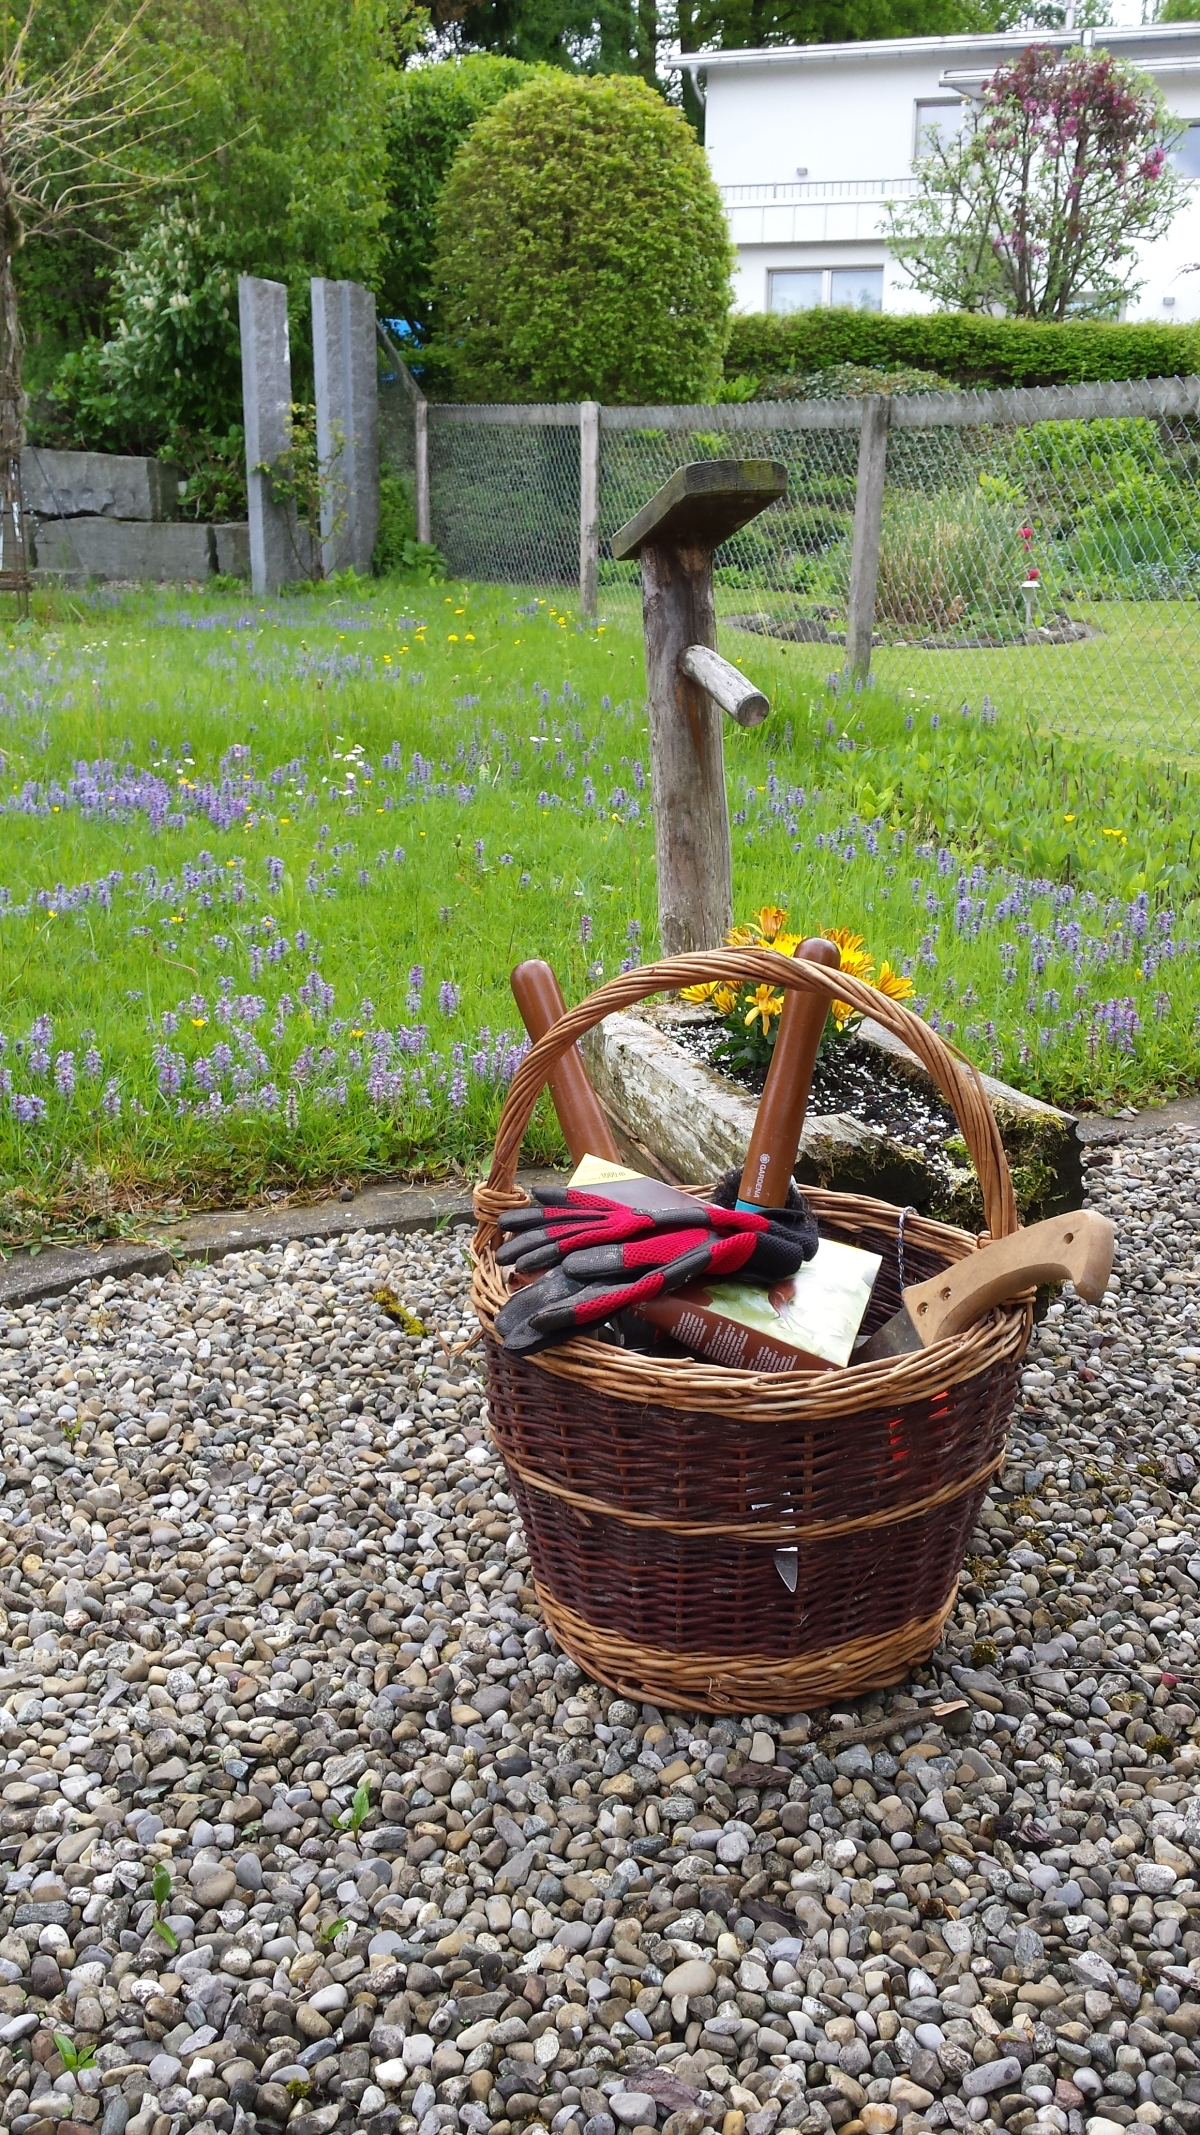 My basket of gardening tools.